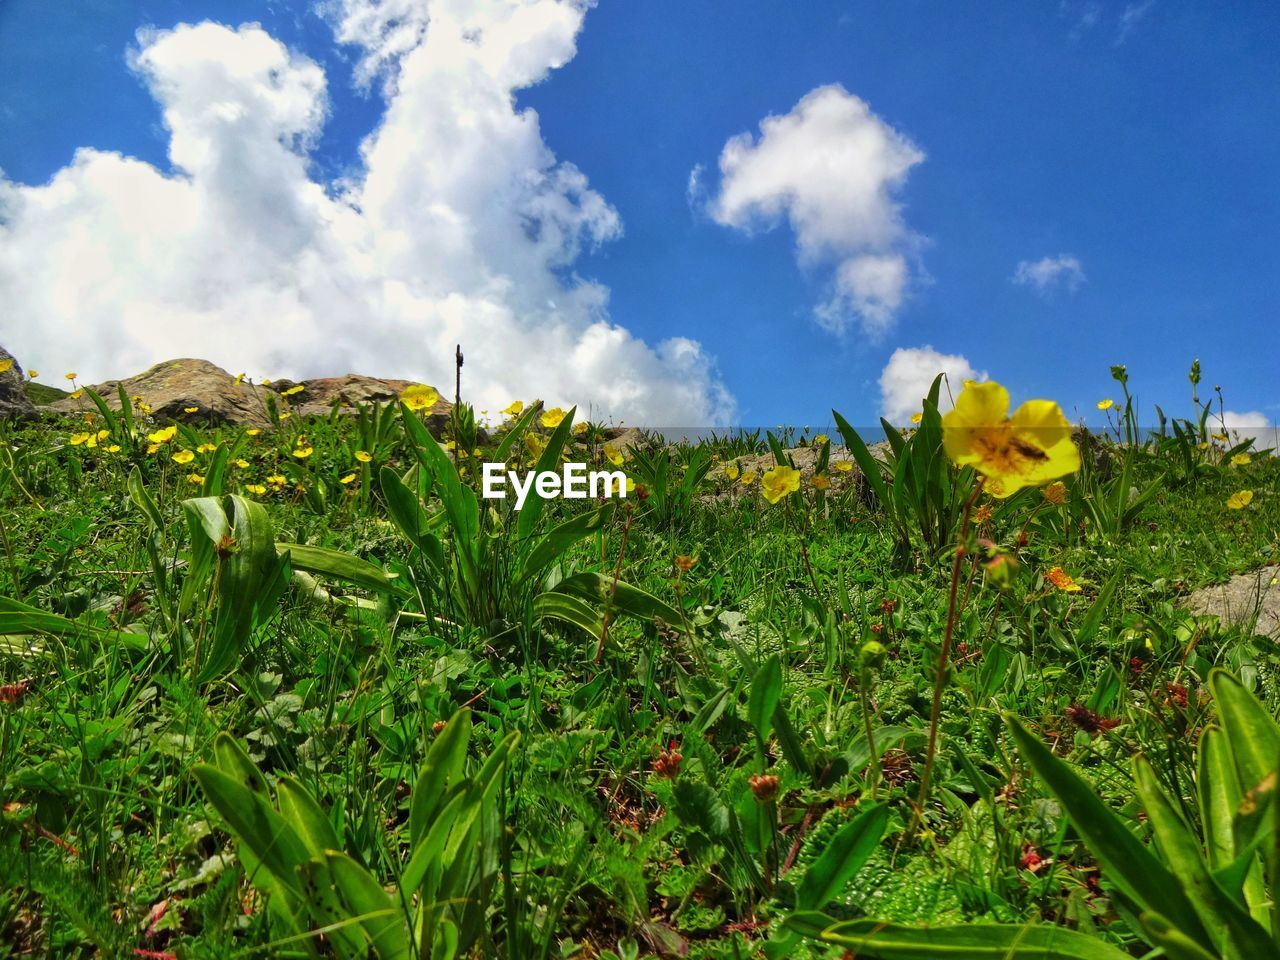 plant, growth, flower, flowering plant, beauty in nature, sky, cloud - sky, green color, field, nature, land, yellow, tranquility, day, freshness, no people, landscape, tranquil scene, fragility, plant part, outdoors, flower head